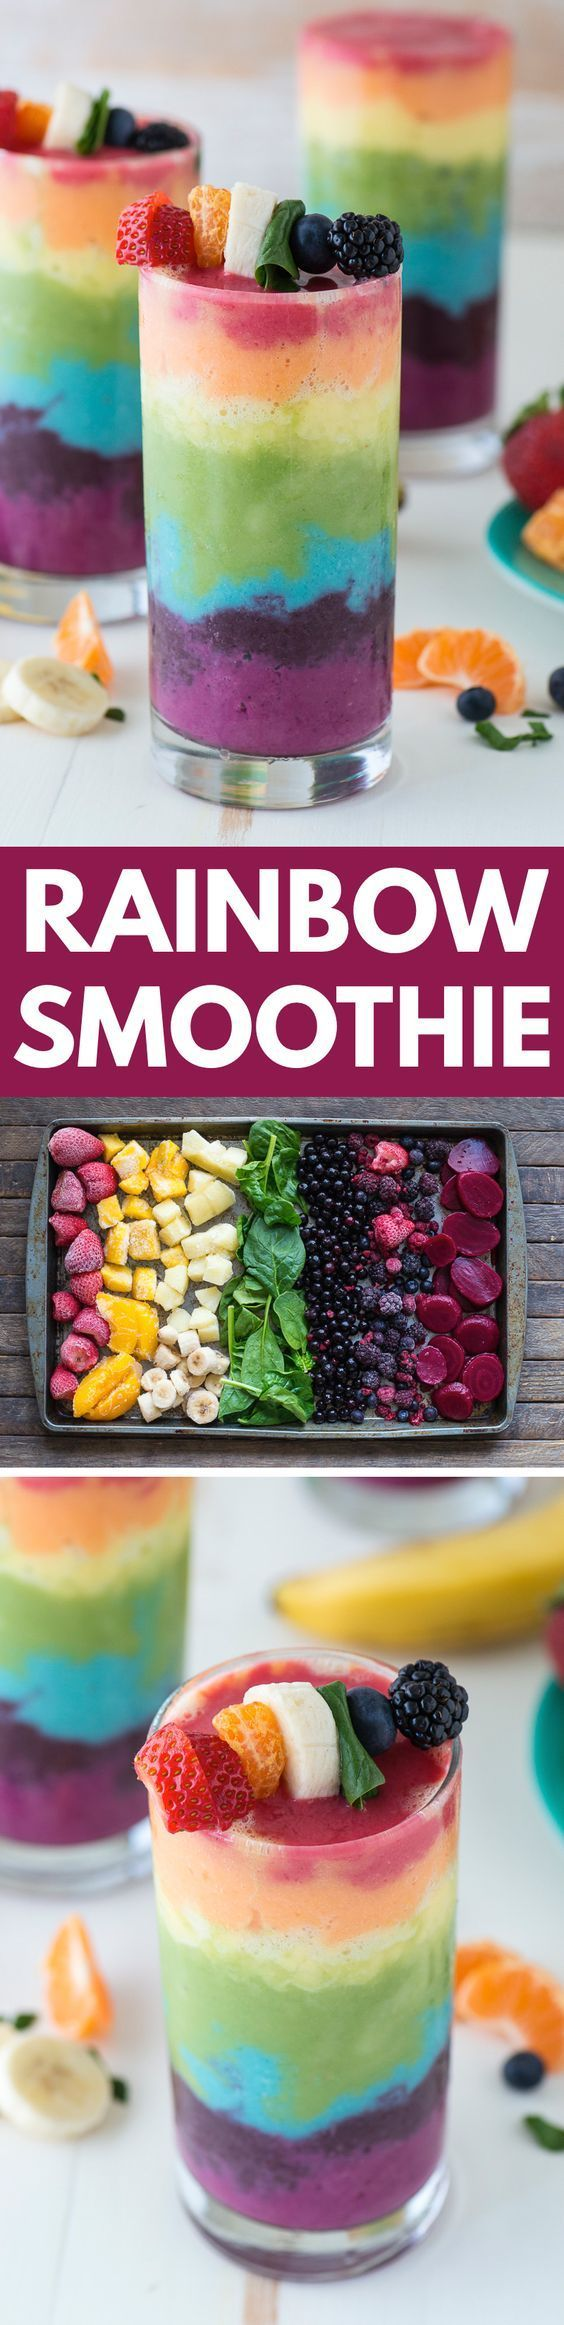 Smoothies - Healthy Treats Everyone Will Love | The WHOot (water recipes)